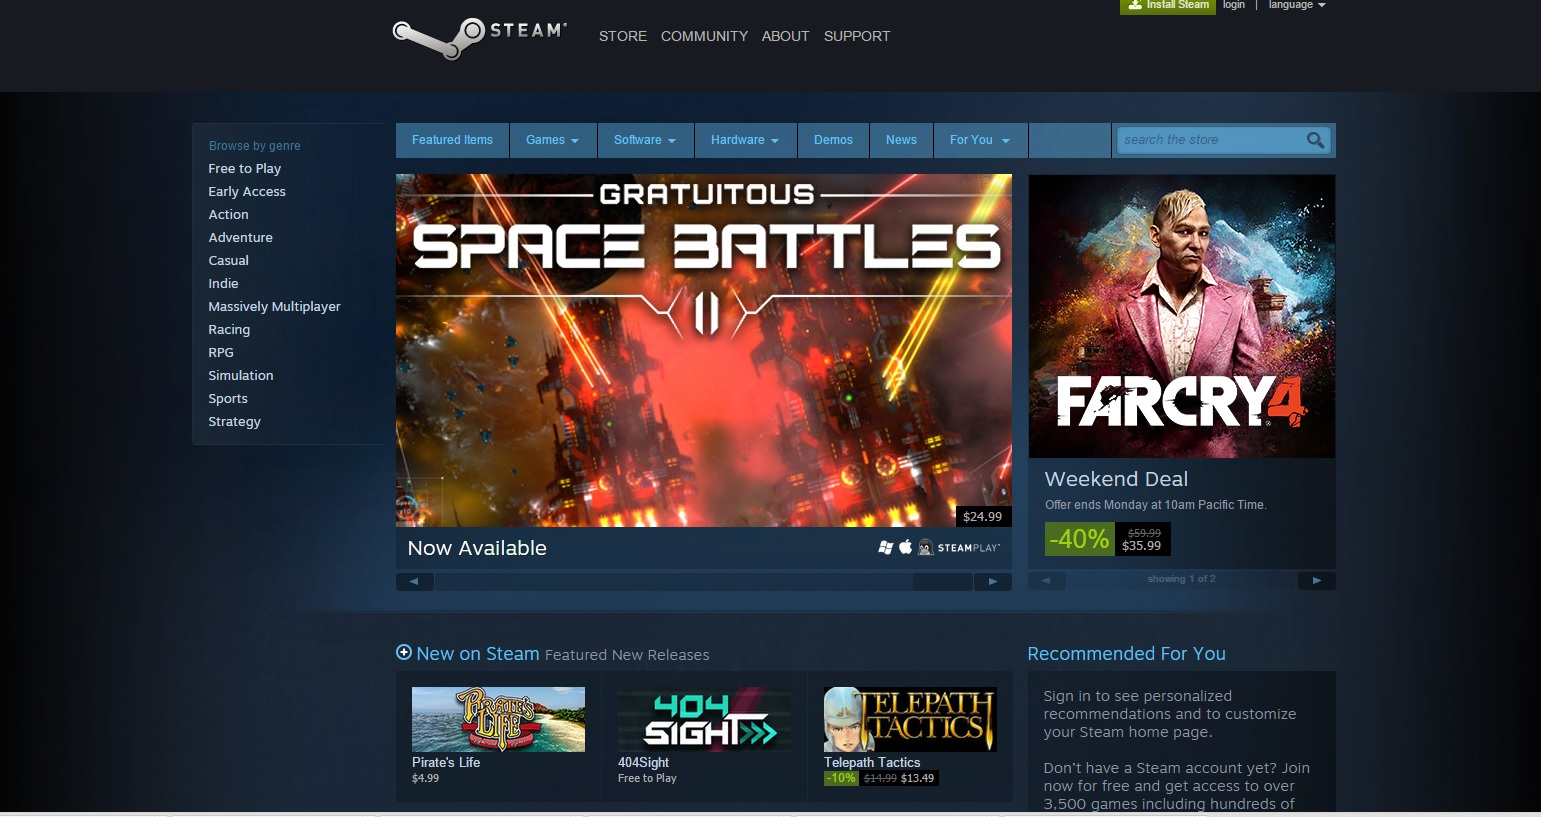 In fight against spammers, Steam now restricts accounts until users show hard cash